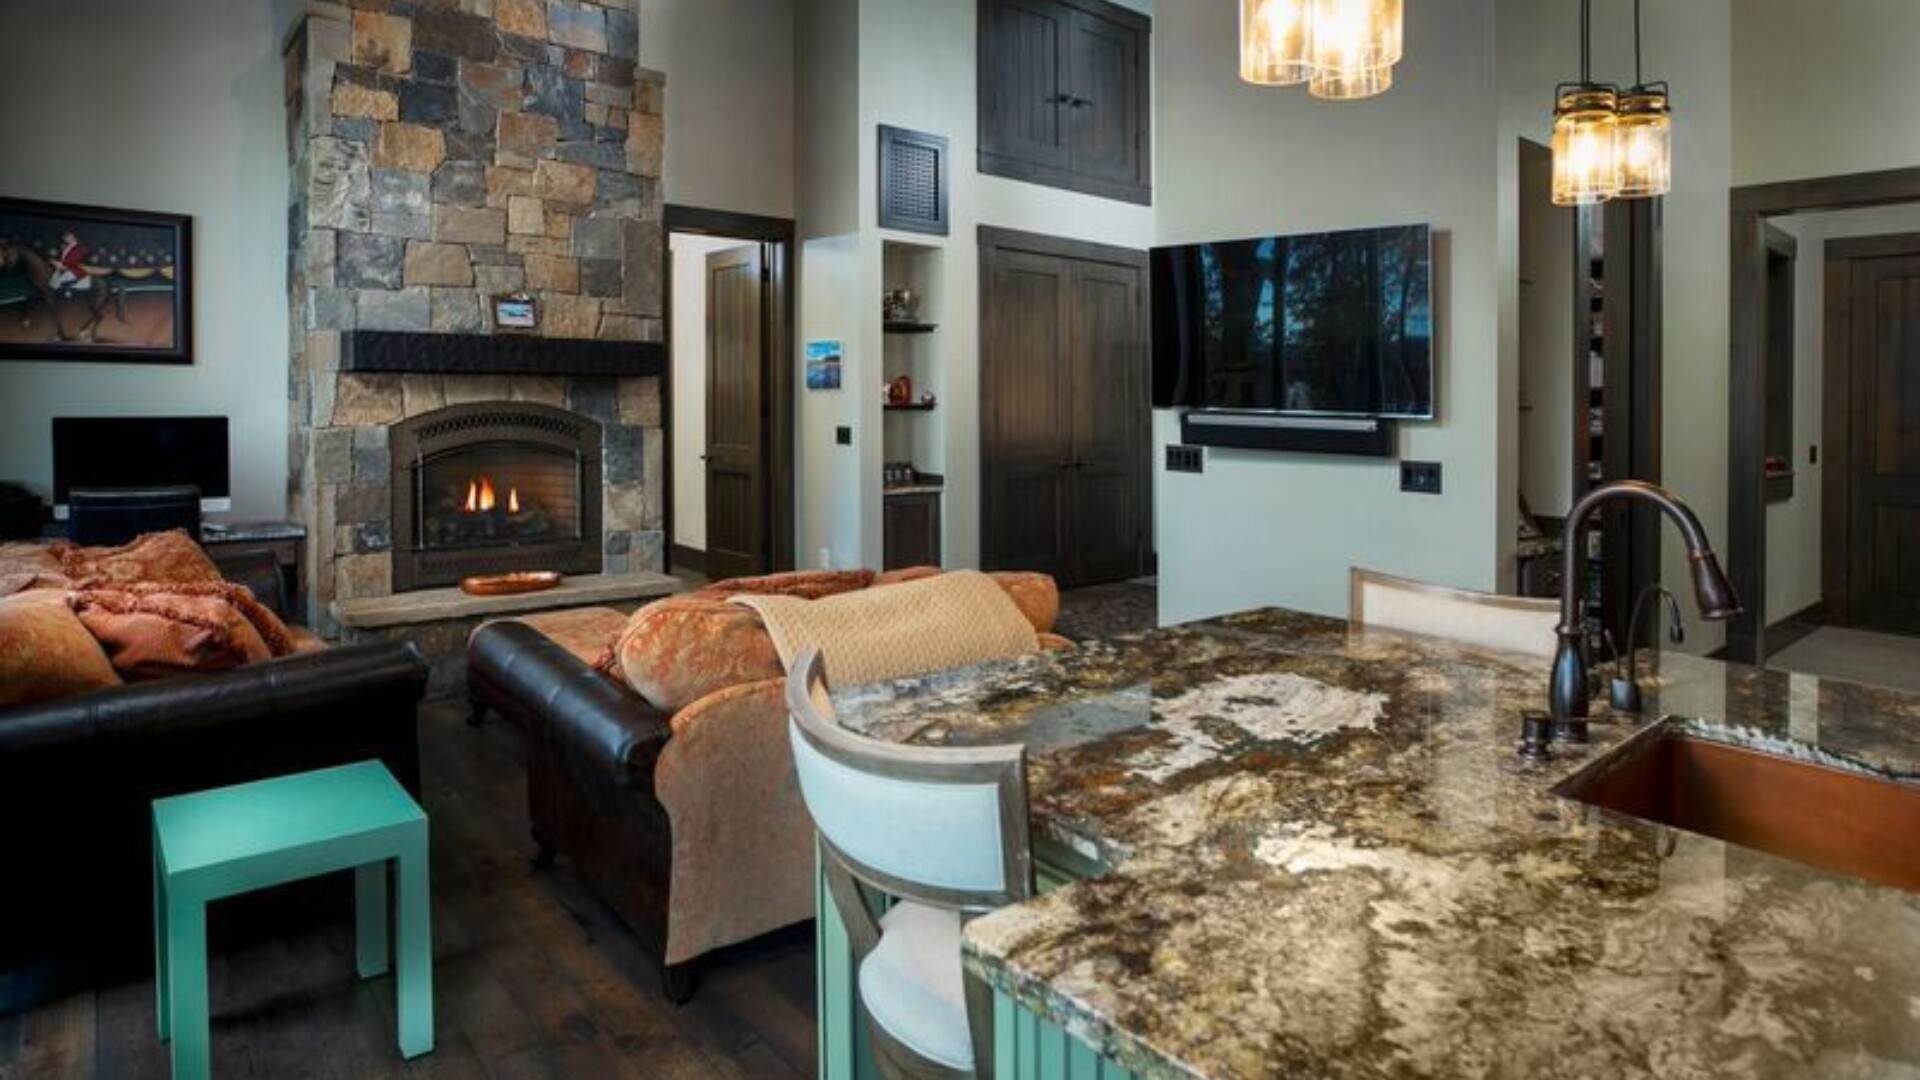 looking out from the pask guest house kitchen into a small living area with couches and a large stone fireplace